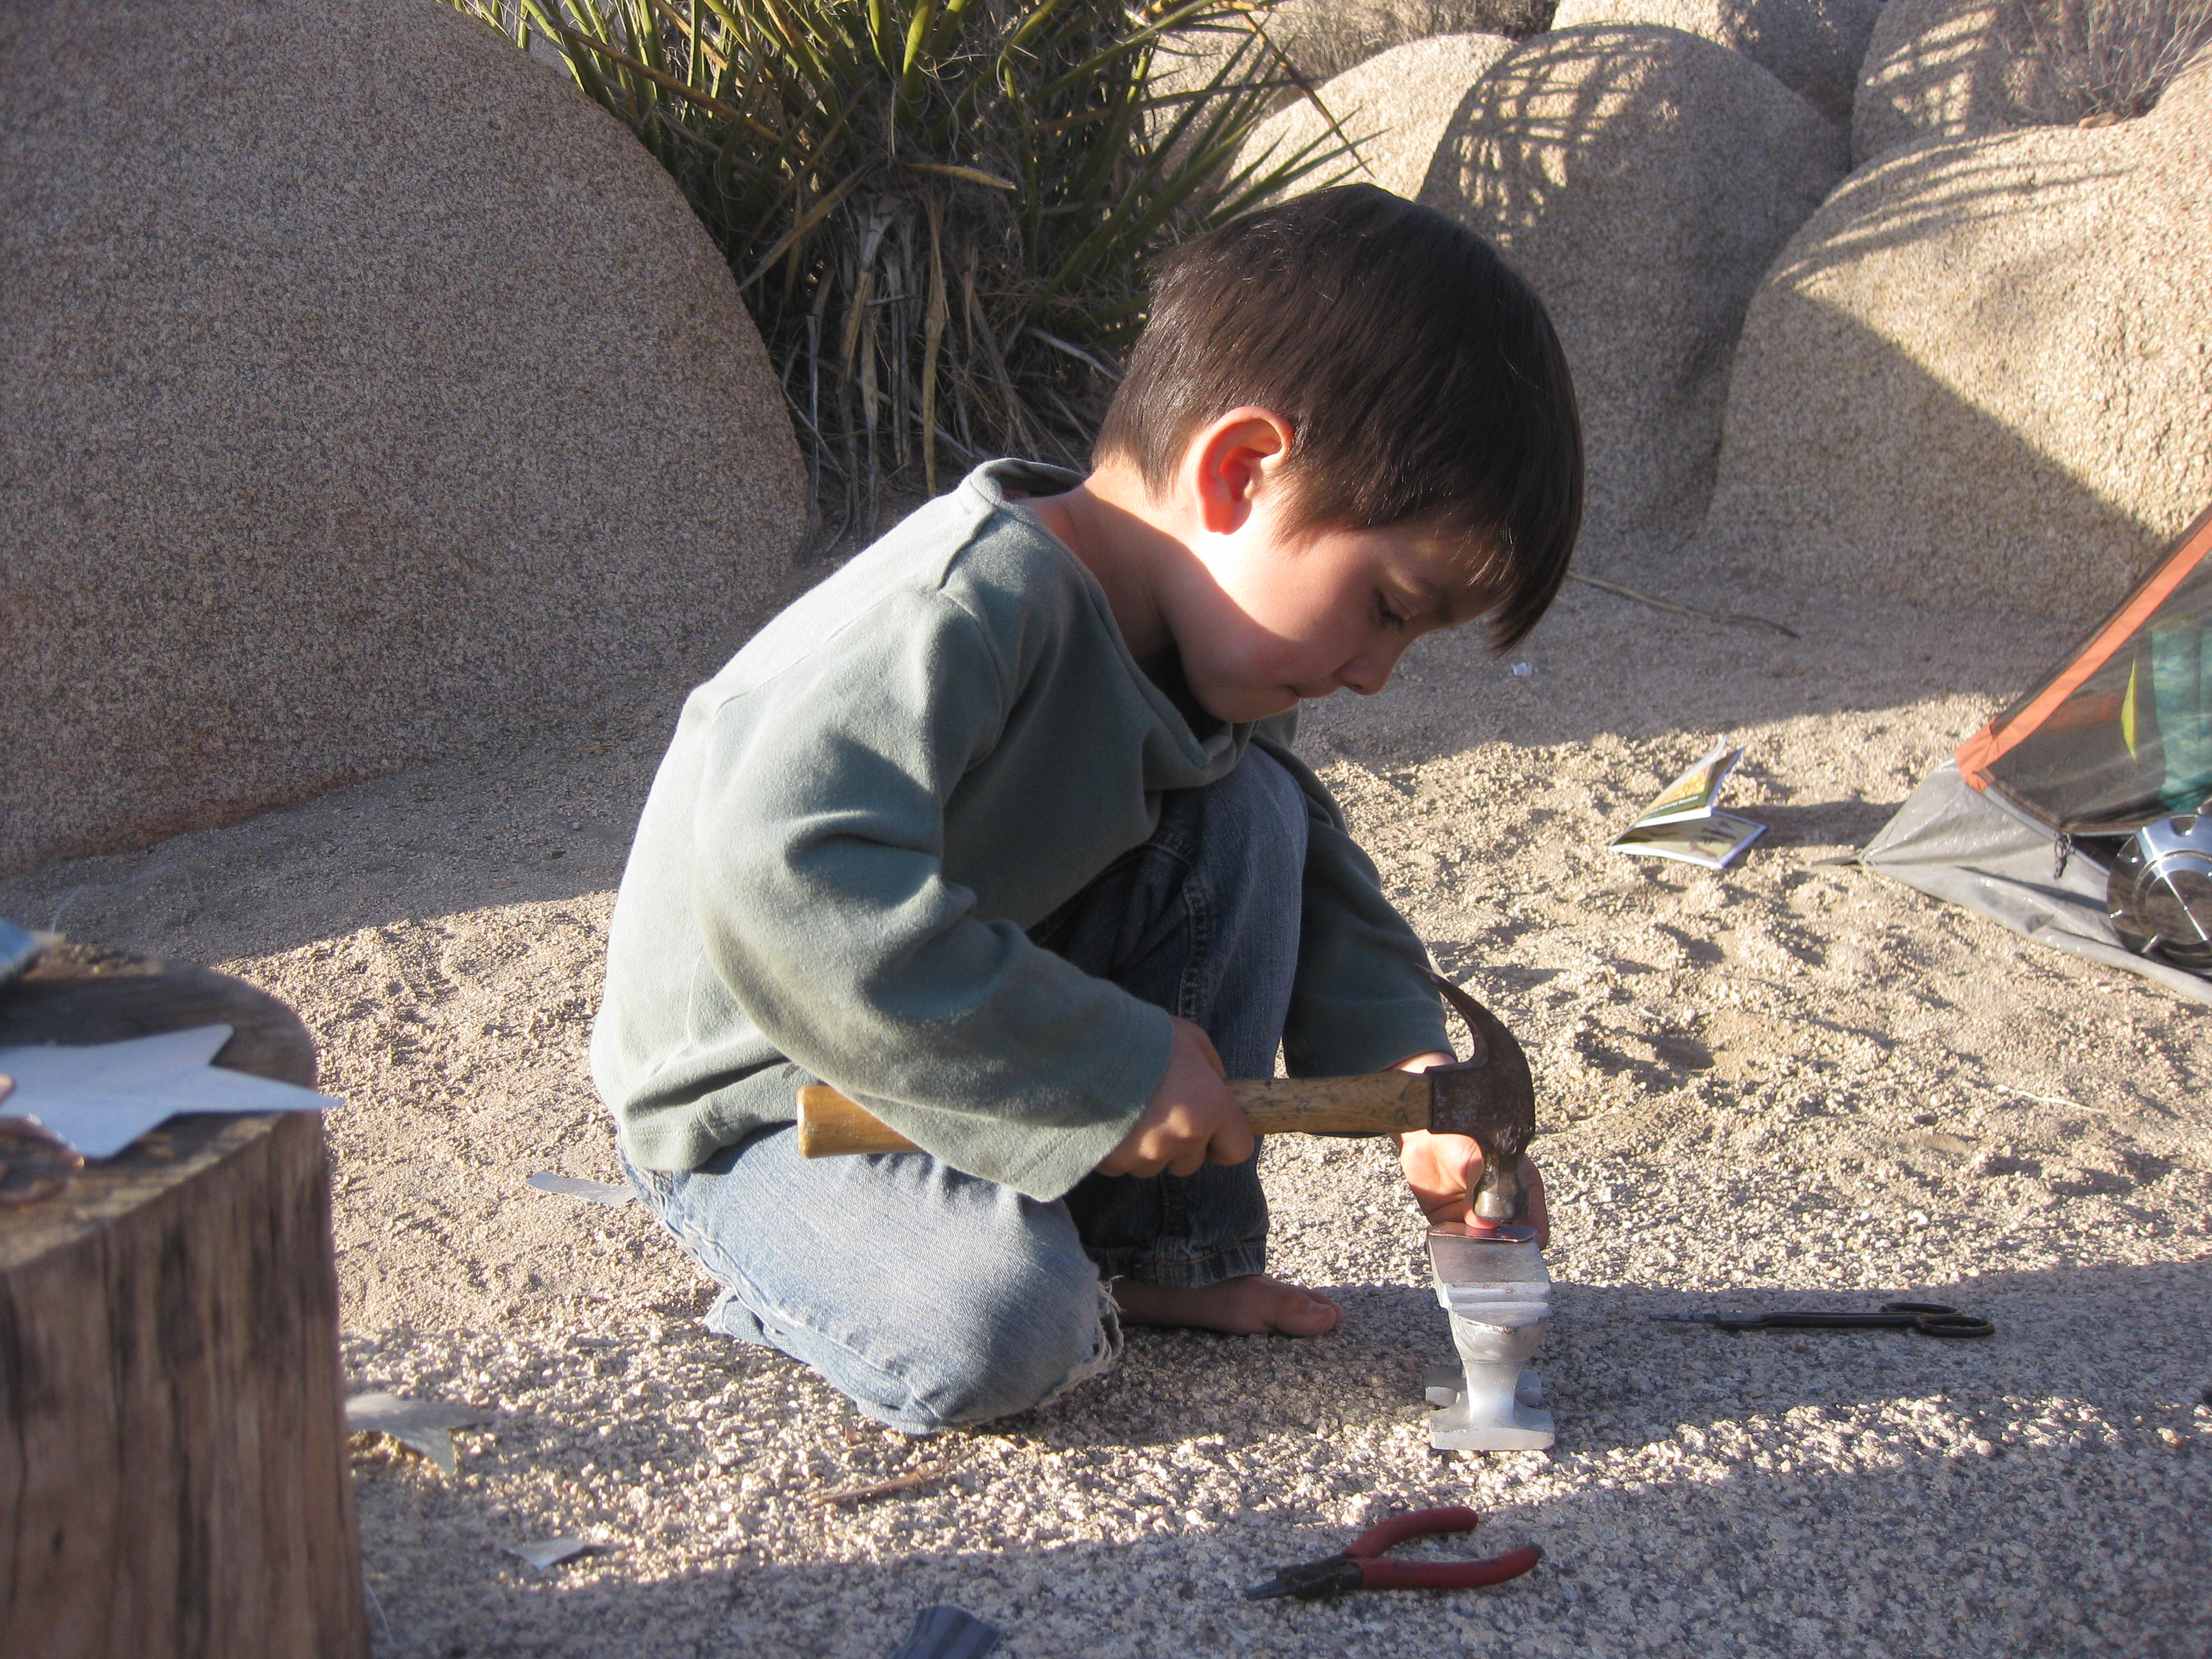 Metal-working while camping in Joshua Tree. Hammering with a real hammer is something you enjoy.